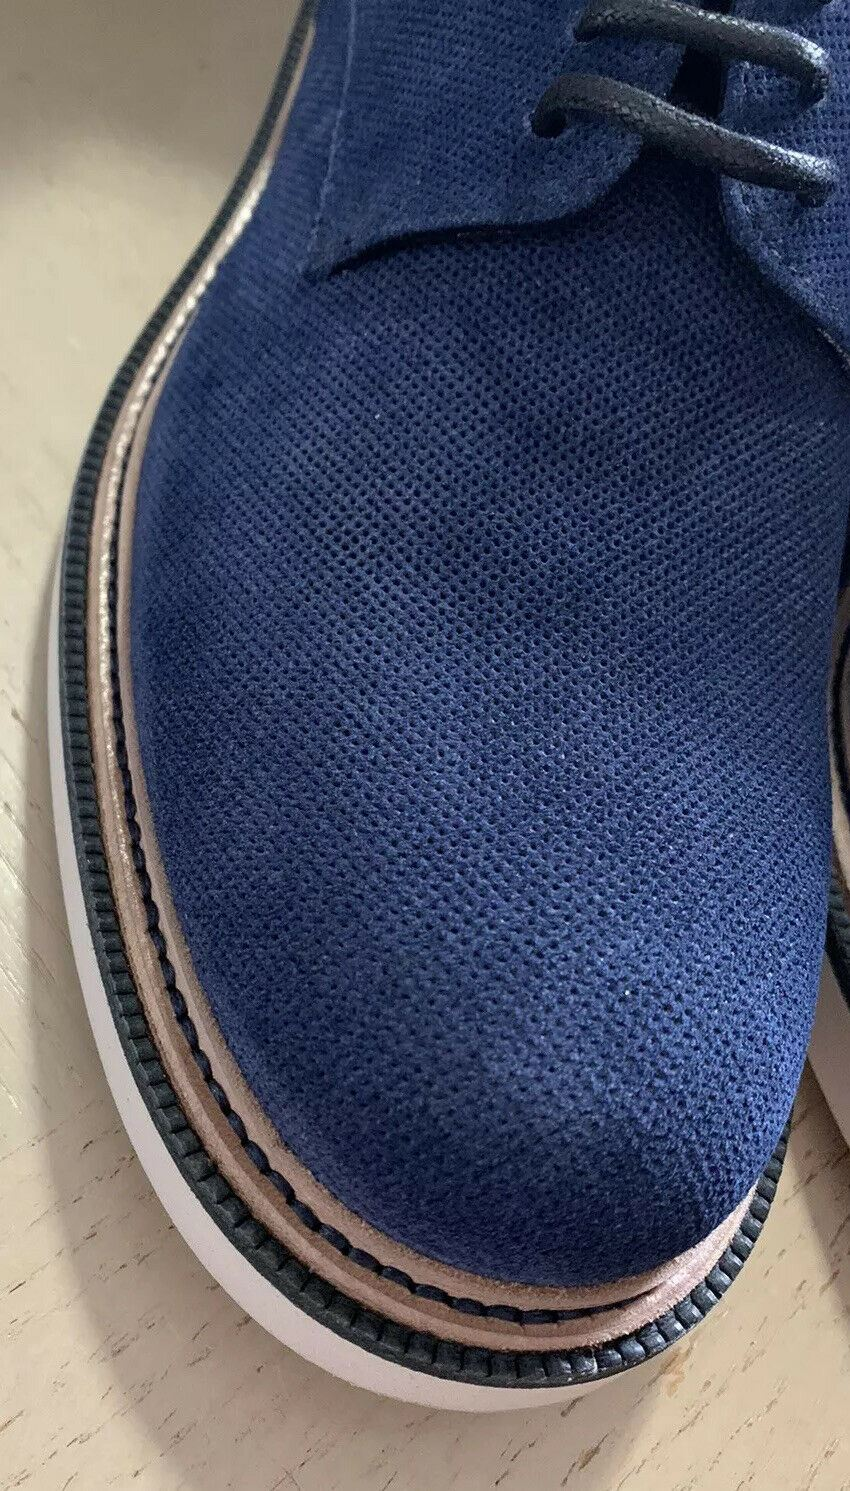 New $1095 Giorgio Armani Men Suede Shoes Blue 10.5 US/9.5 Eu X2C575